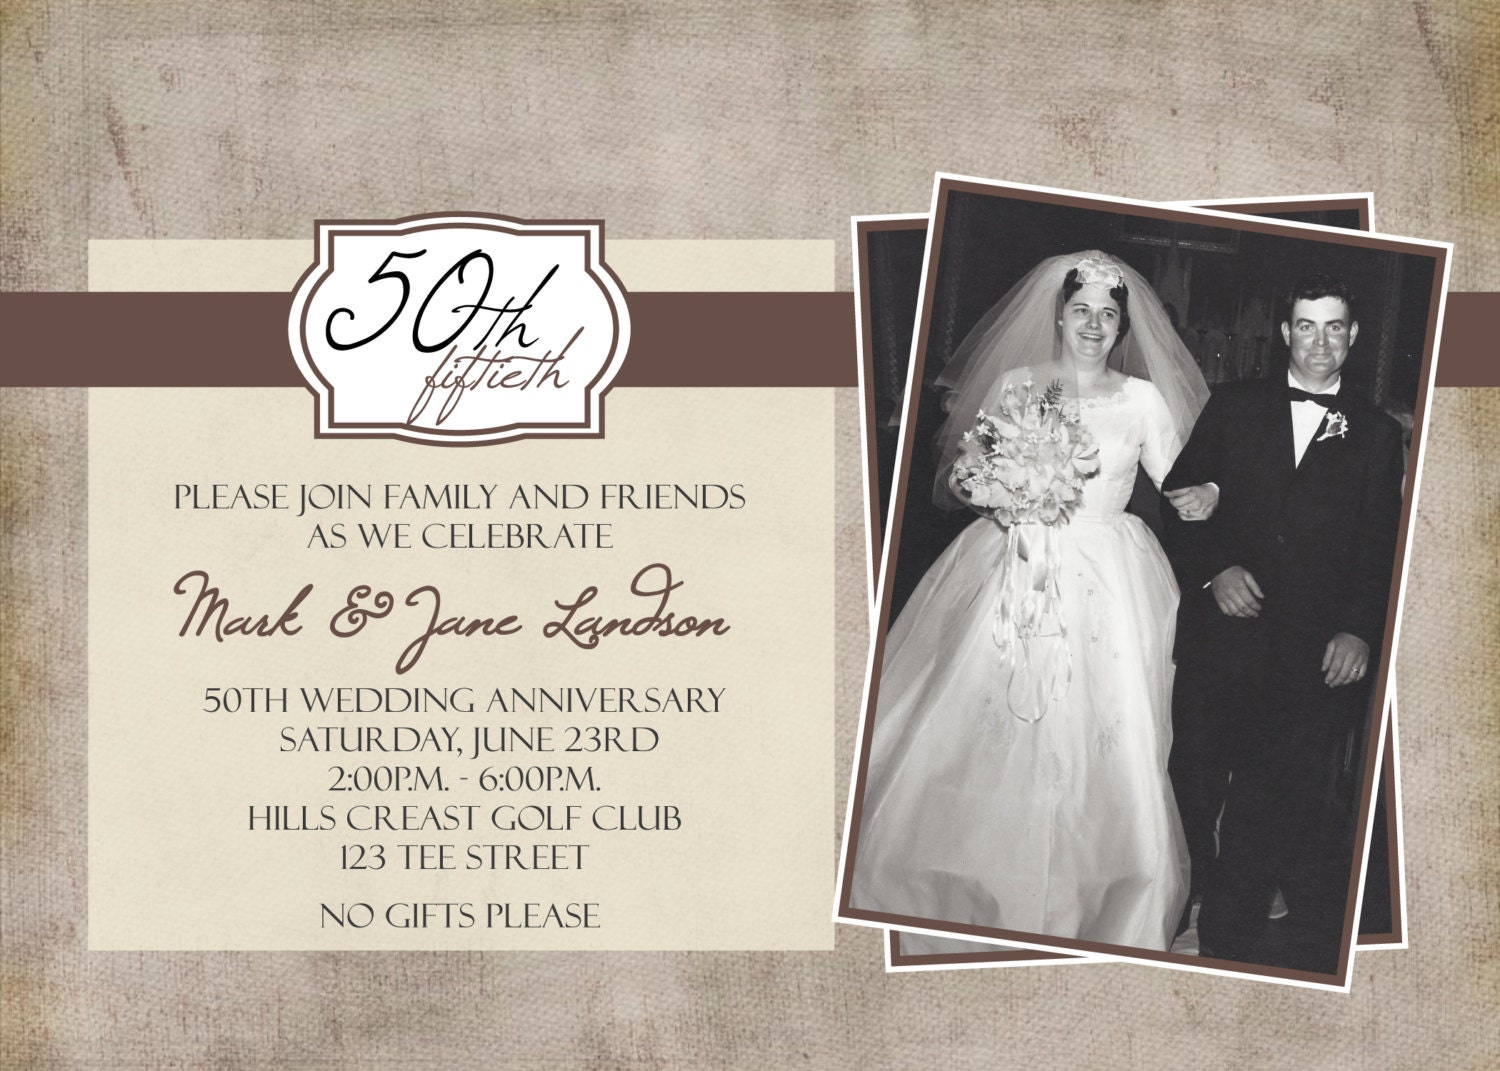 Fiftieth Wedding Anniversary Invitations: 50th Anniversary Photo Party Printable Invitation